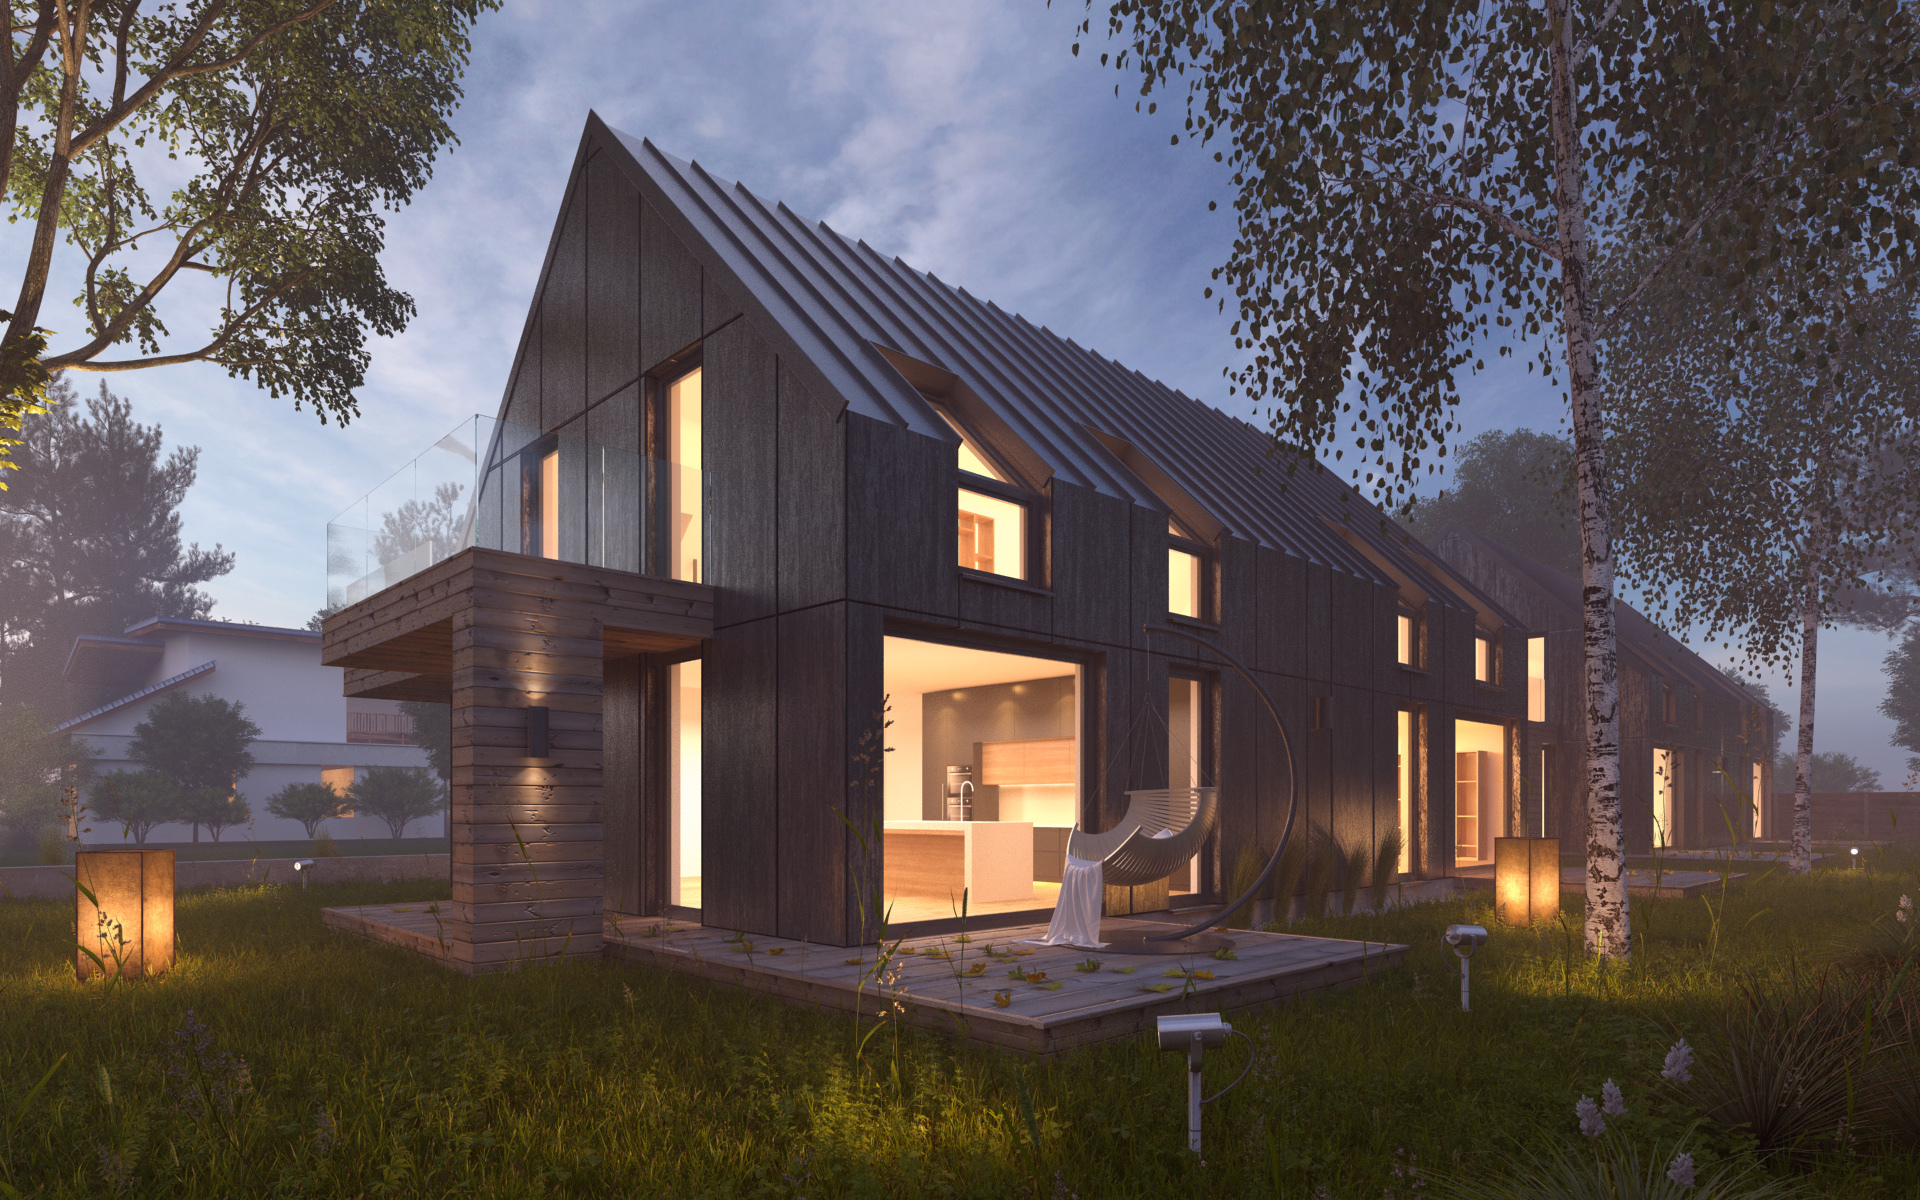 Vray night scene rendering modern house by visualcg 3docean - Painting exterior render model ...